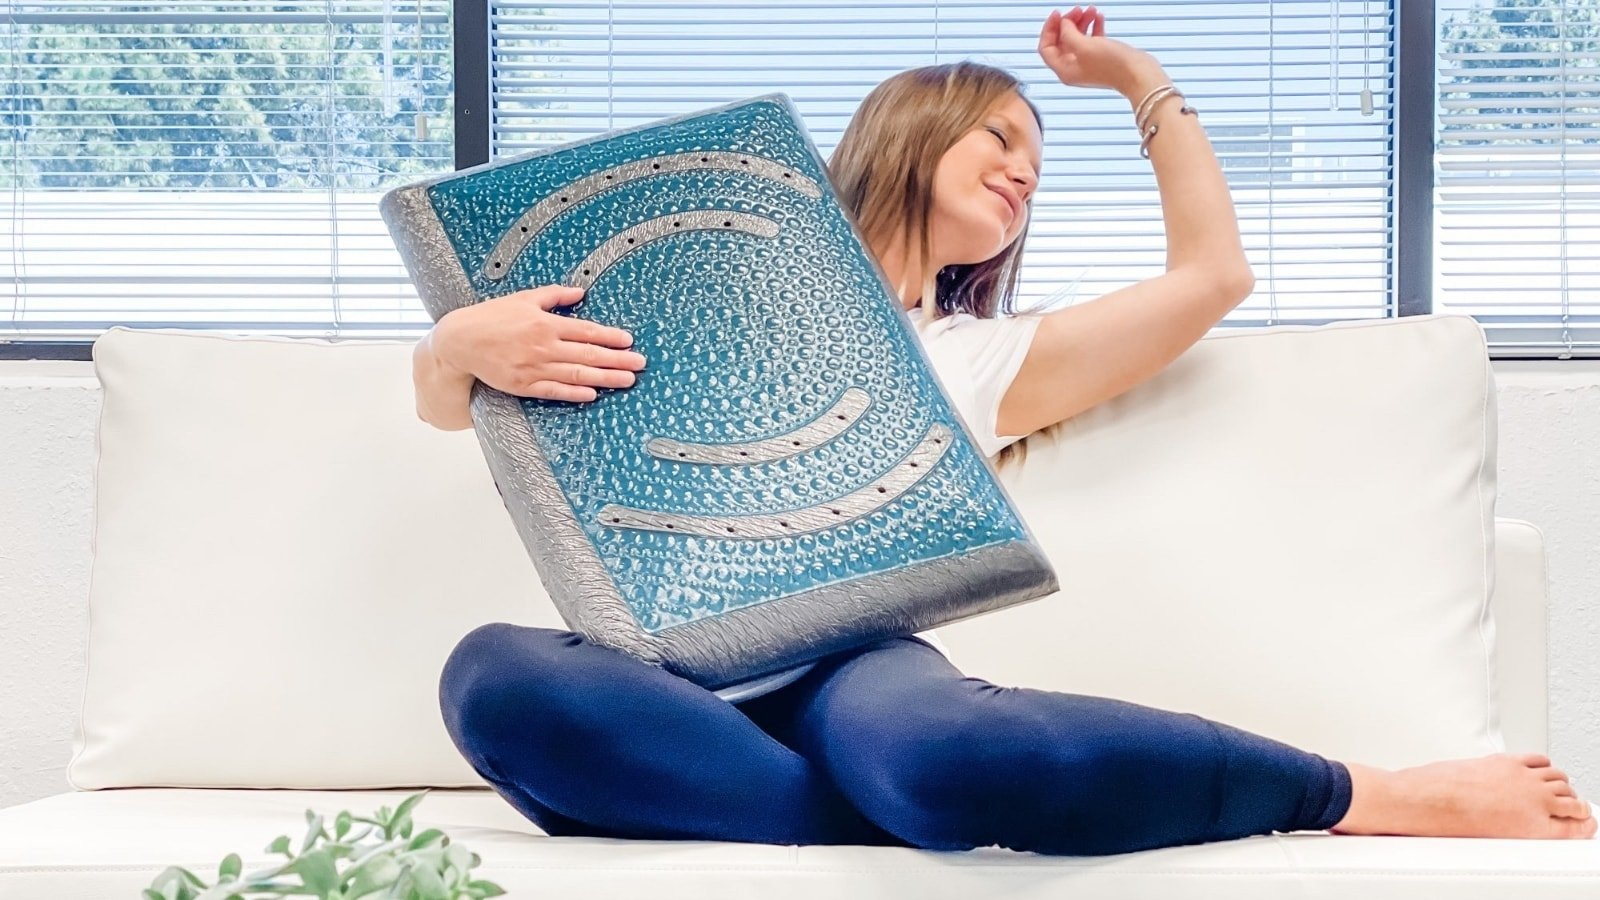 Alpha Pillow 2 carbon-infused memory foam pillow has pure silver tech to self-clean